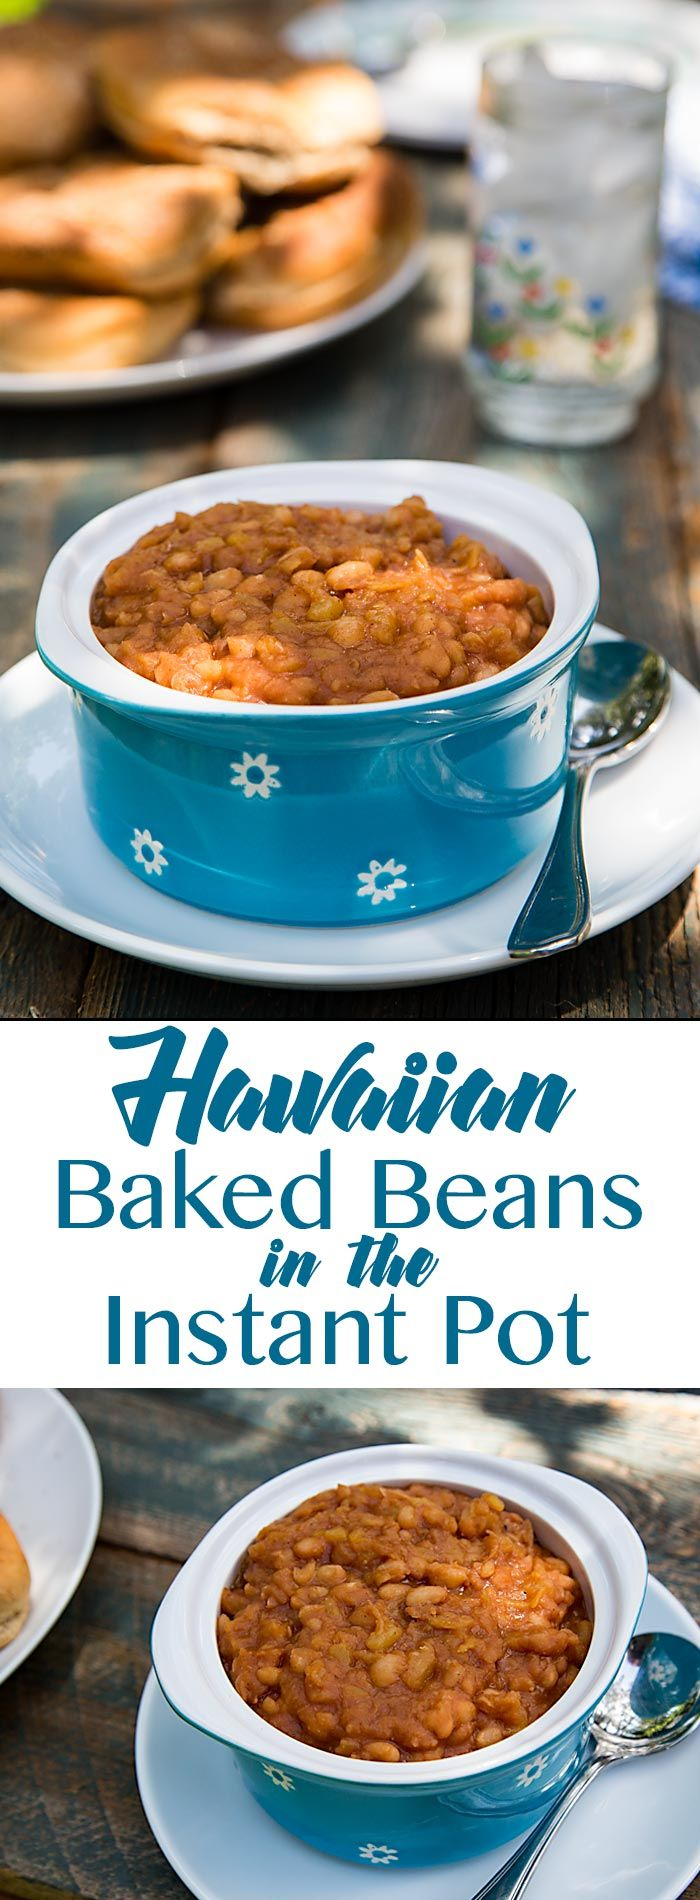 These Hawaiian Baked Beans are sweetened with pineapple, maple syrup, and dates for a delicious vegan side dish that is low in sugar and ketchup-free.